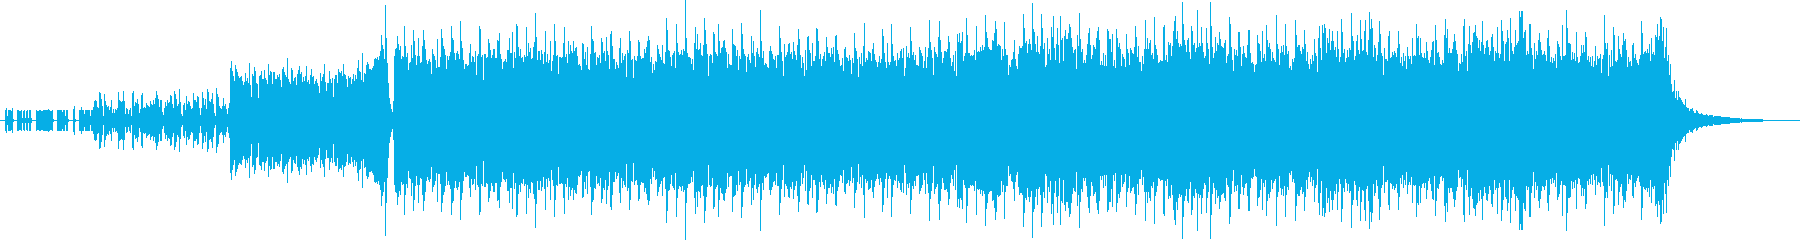 A sense of speeding D & B and rock guitar's reproduced waveform